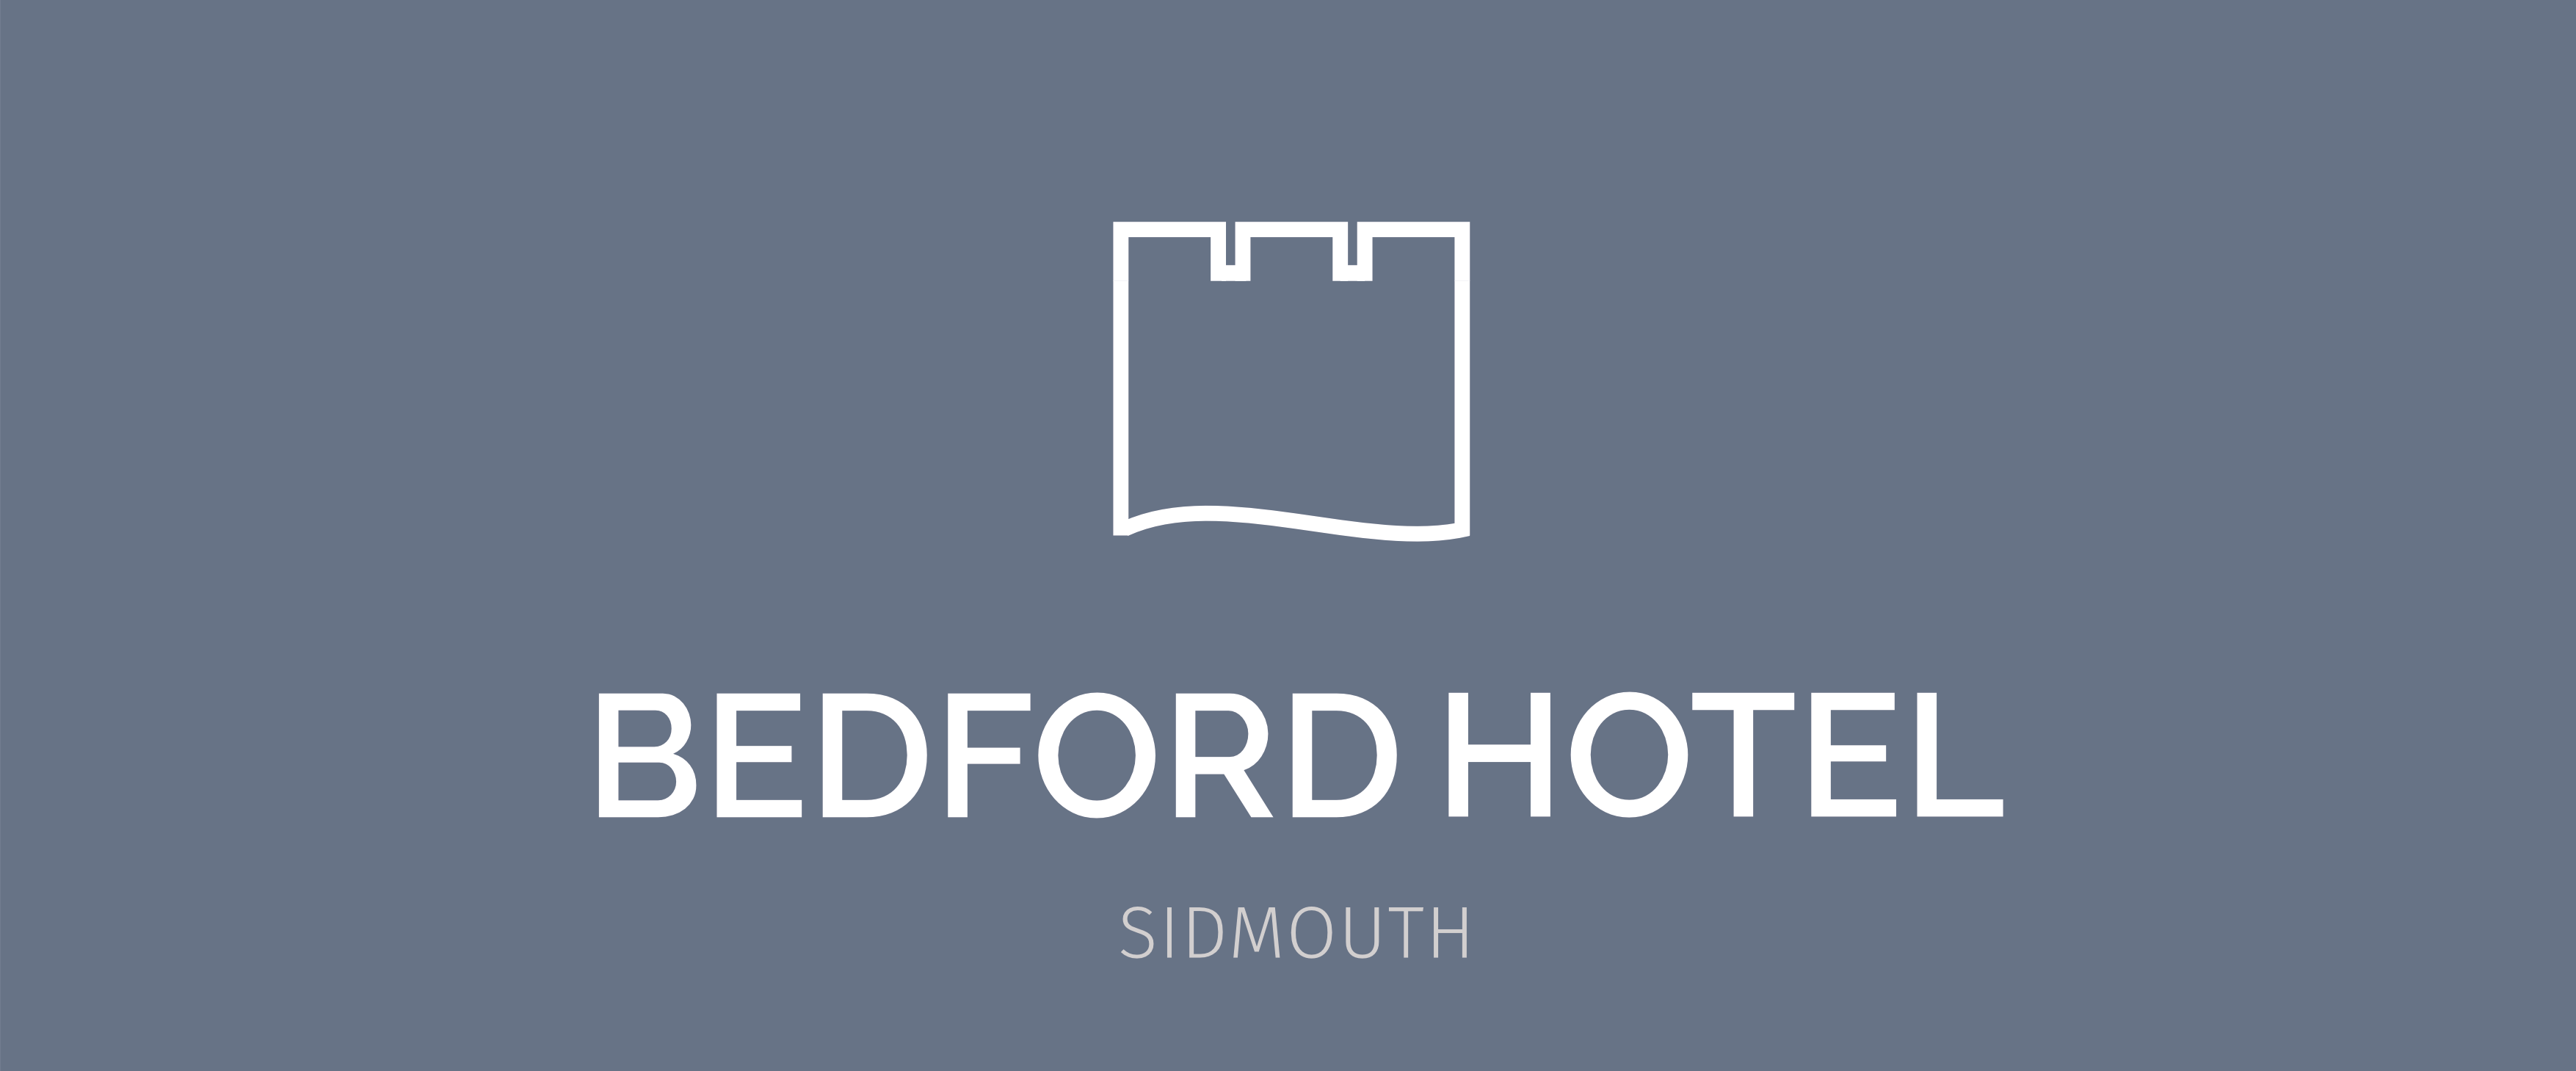 Bedford Hotel Sidmouth